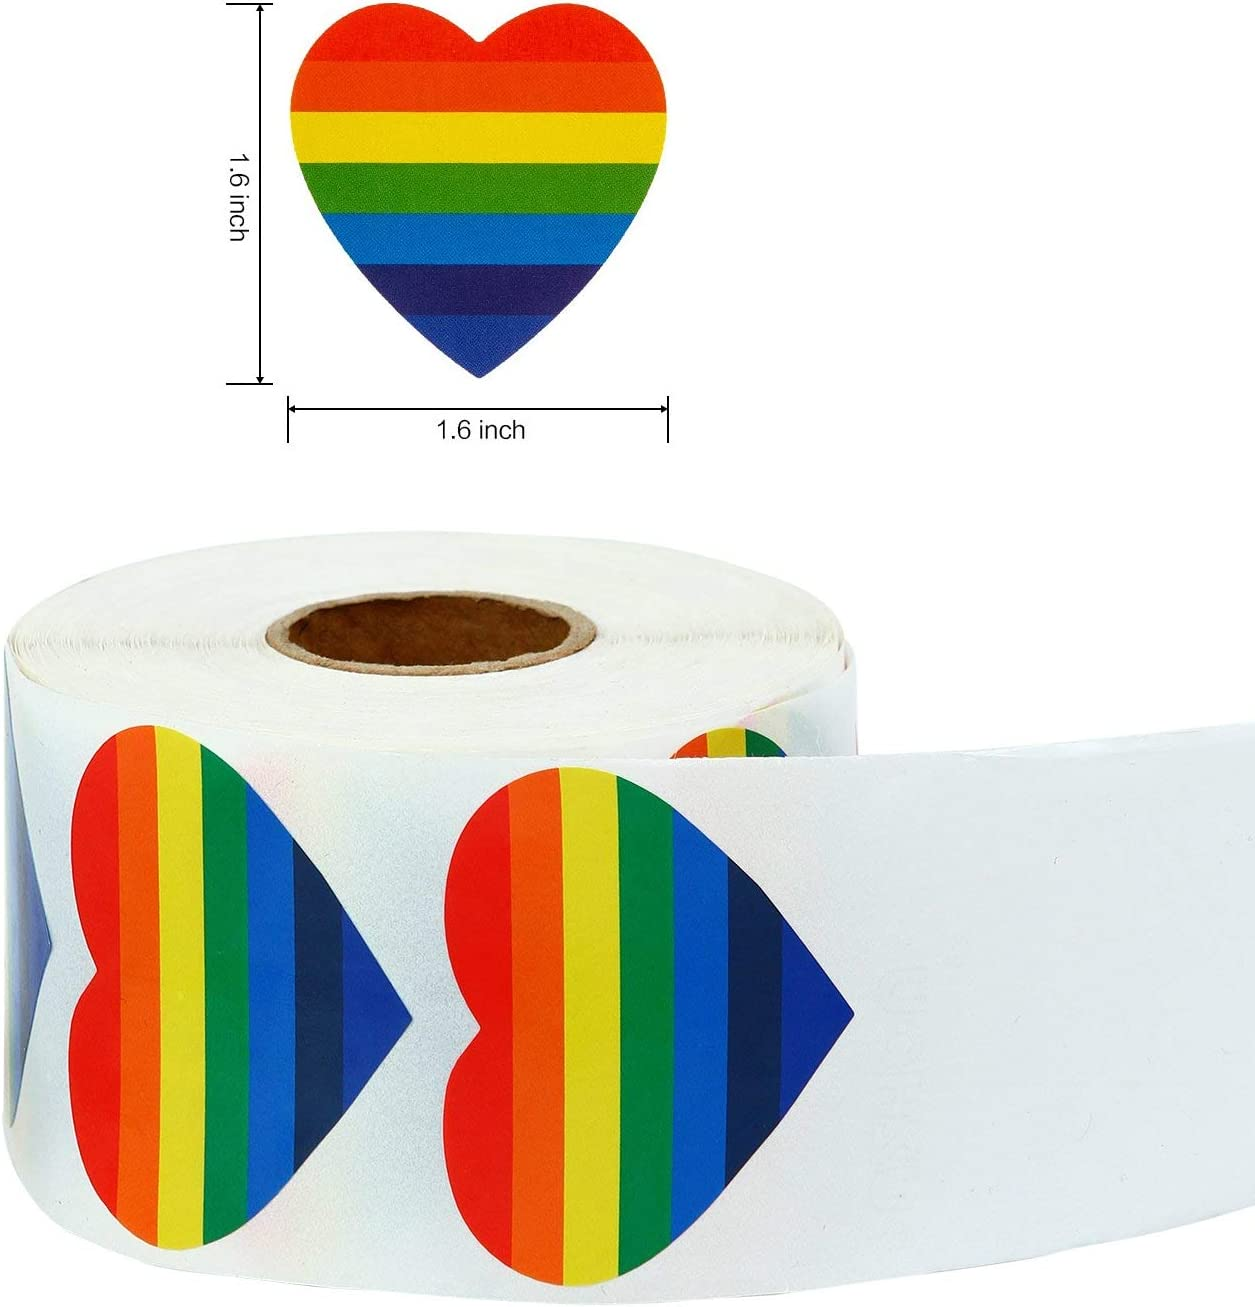 50 Pack Rainbow Gay Pride Flags Small Rainbow Stick Flag and 500 Pcs Rainbow Gay Pride Stickers,Heart-Shaped LGBT Stickers Roll for Pride Rainbow Party